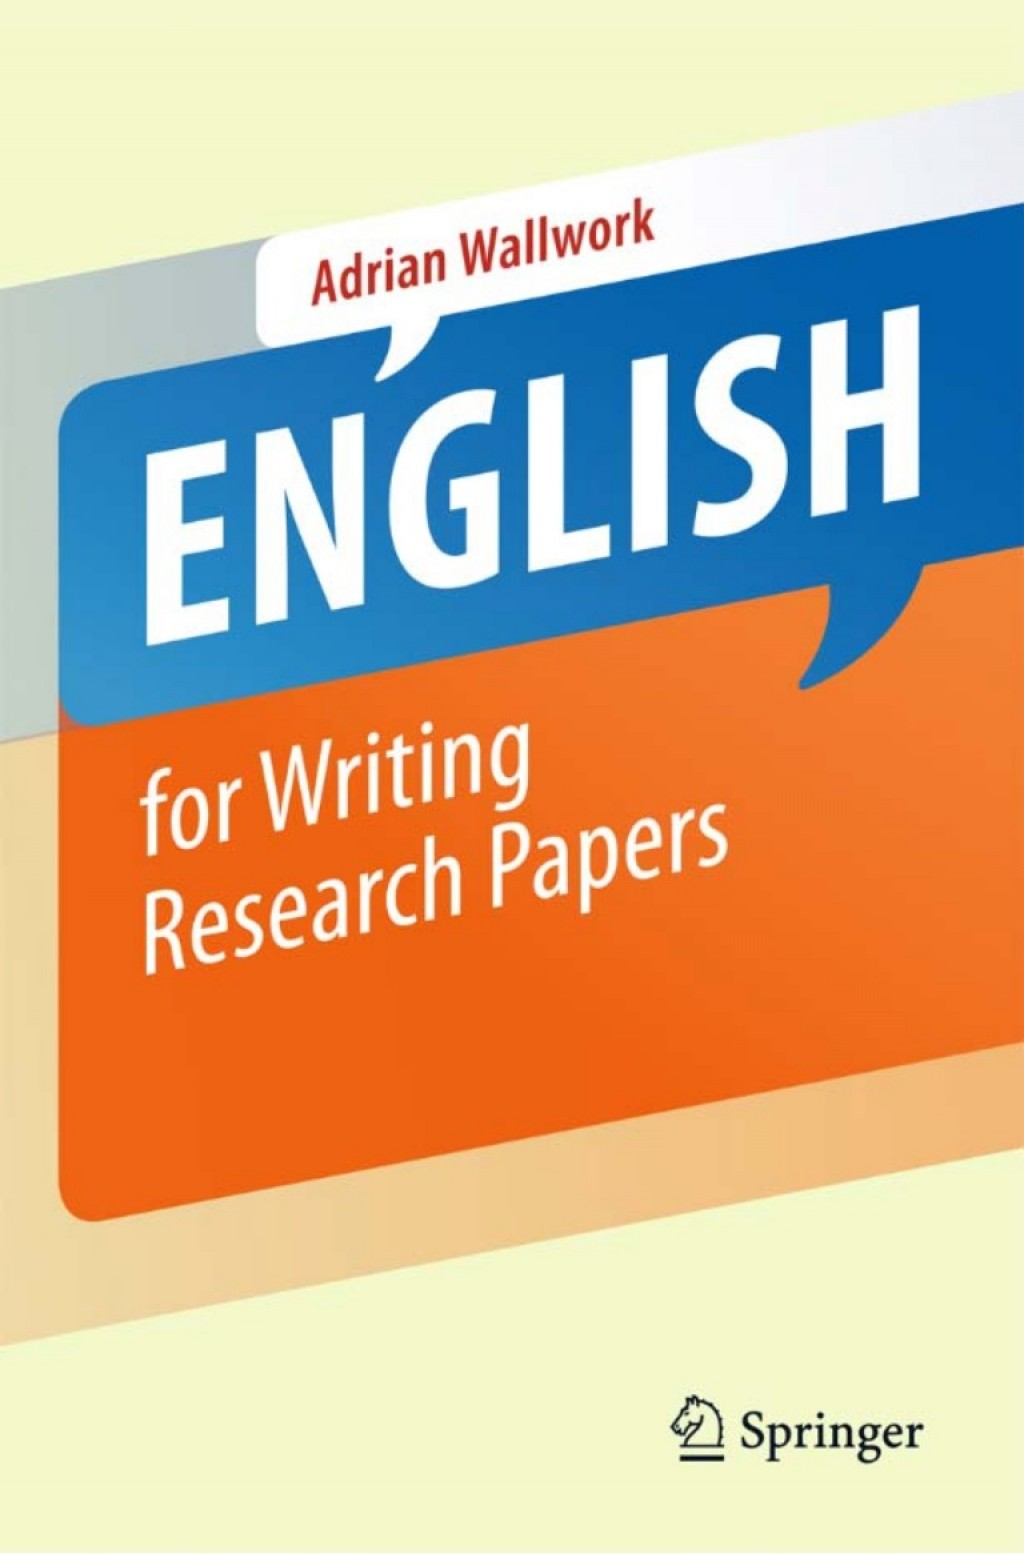 017 Research Paper Writing Englishforwritingresearchpapers Conversion Gate01 Thumbnail Unforgettable Rubric Software Free Download Prompts Large